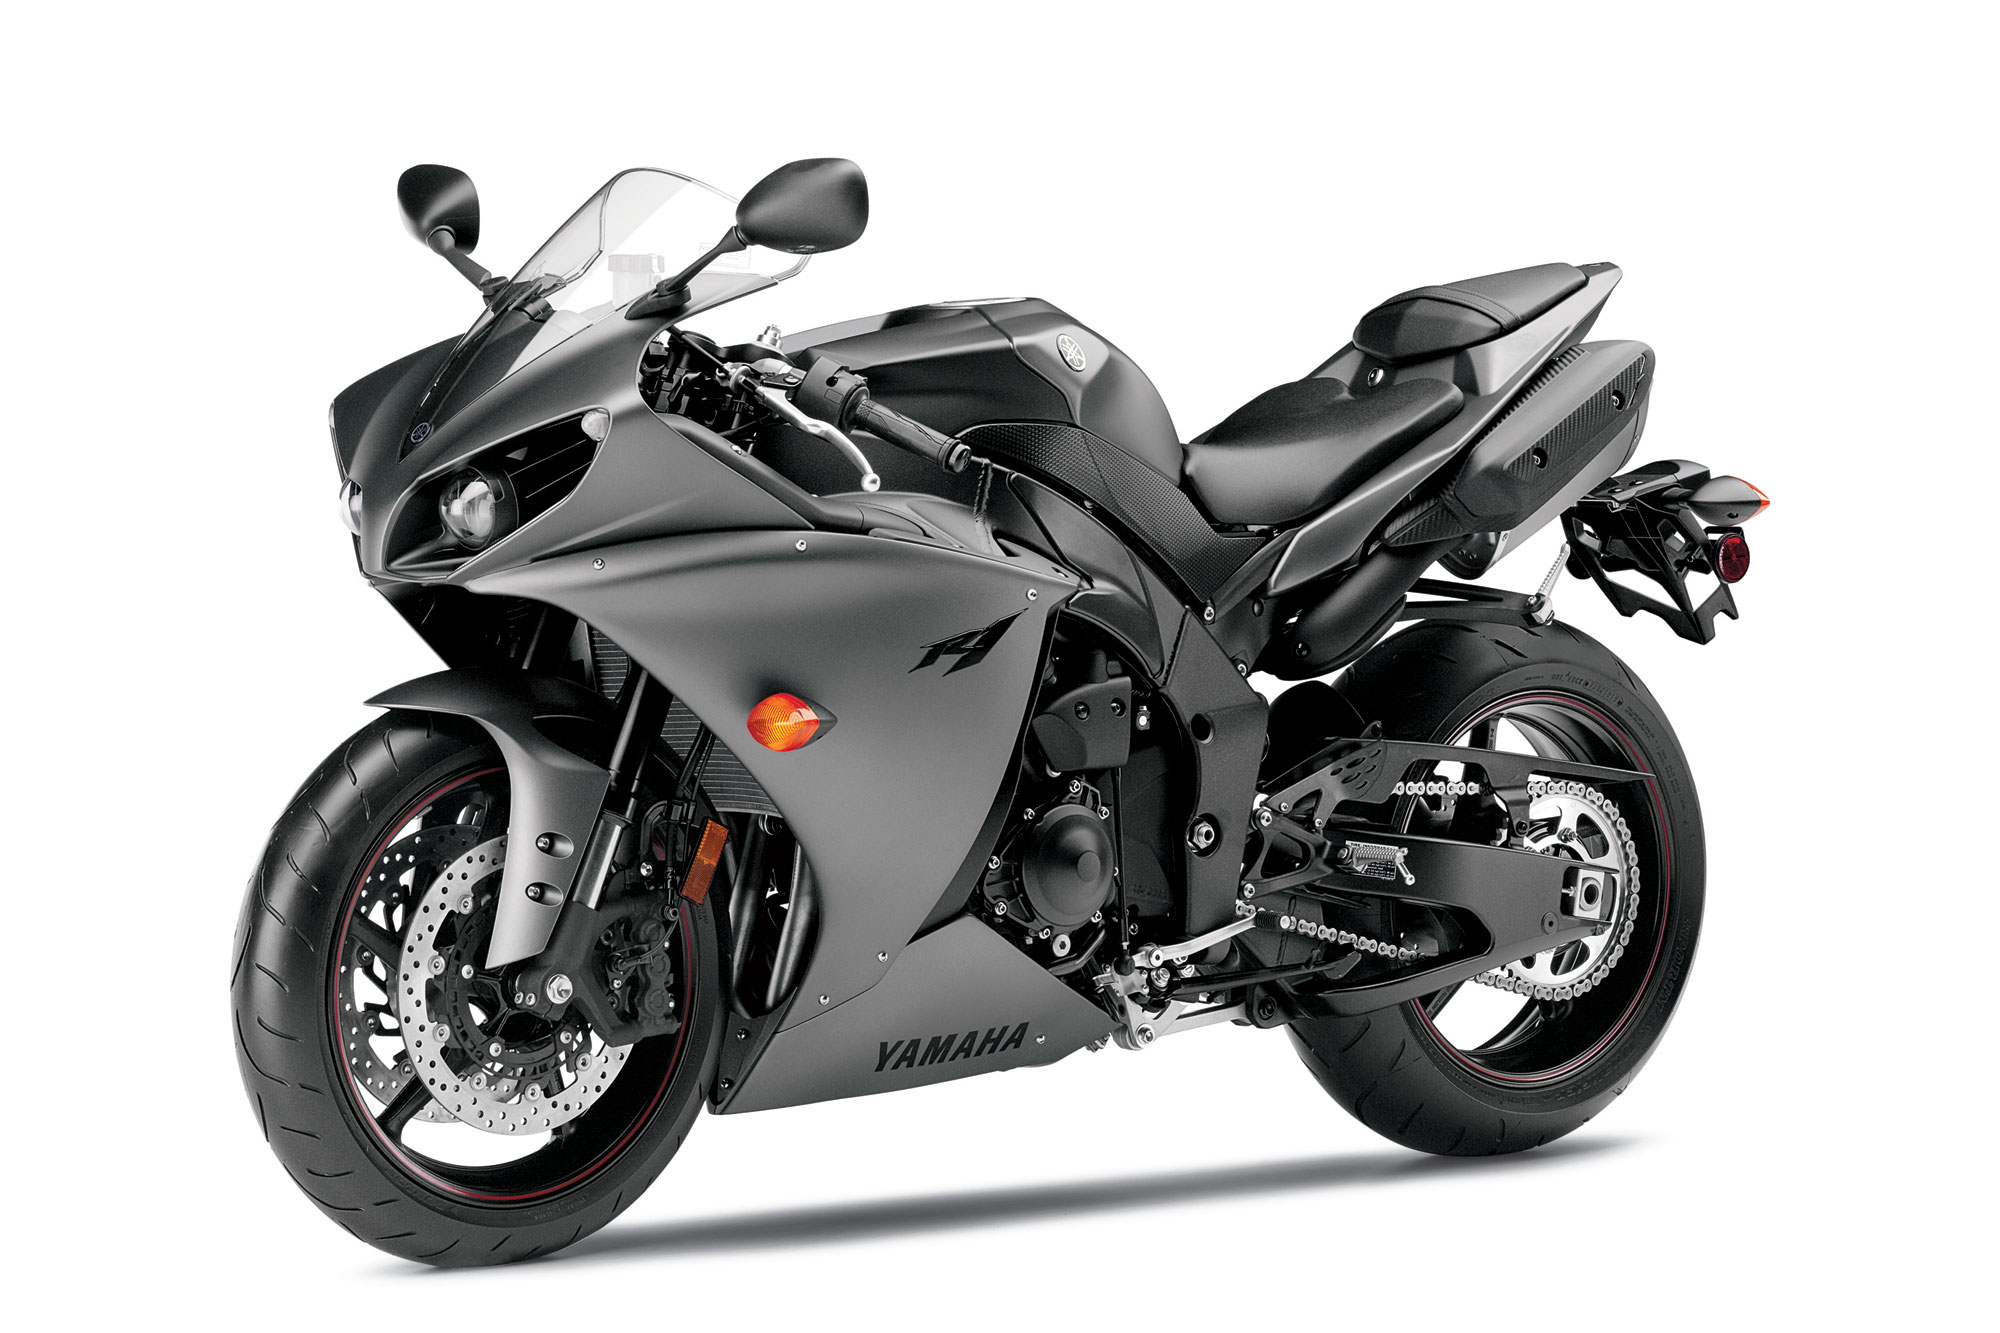 Yamaha YZF-R1 Backgrounds on Wallpapers Vista